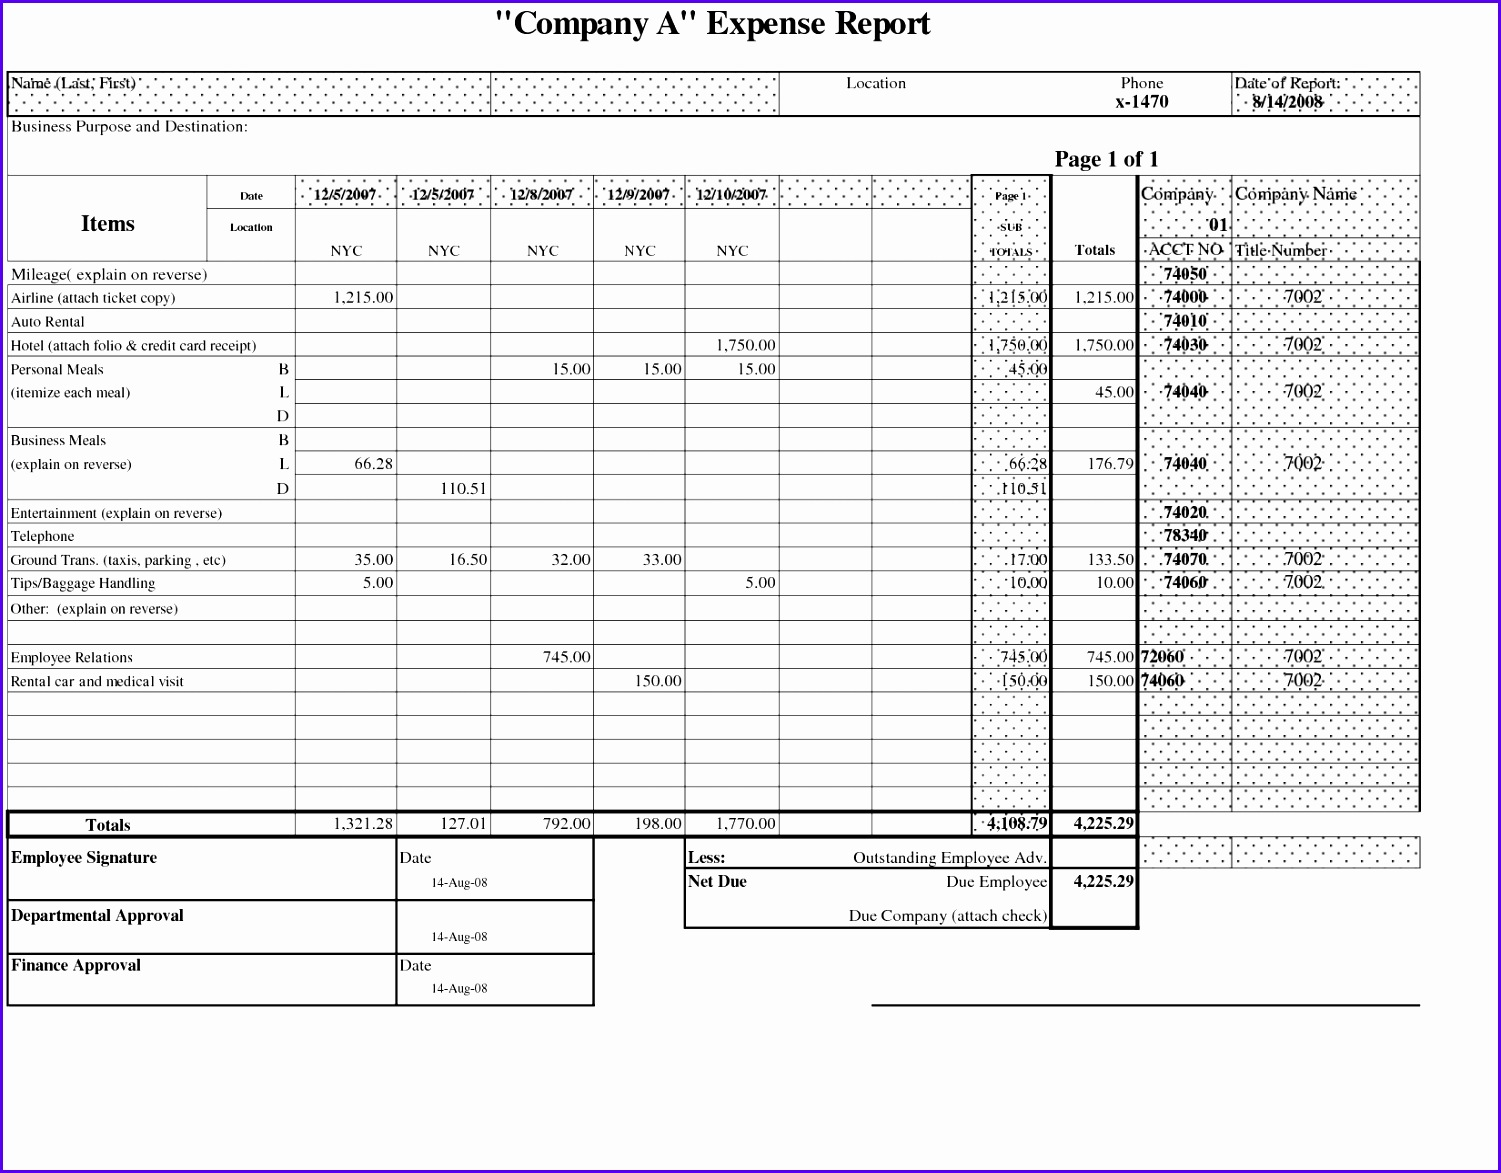 Credit Card Expense Report Form Pany Credit Card Expense Report Template  Free Credit Card Expense Report  Expense Report Example